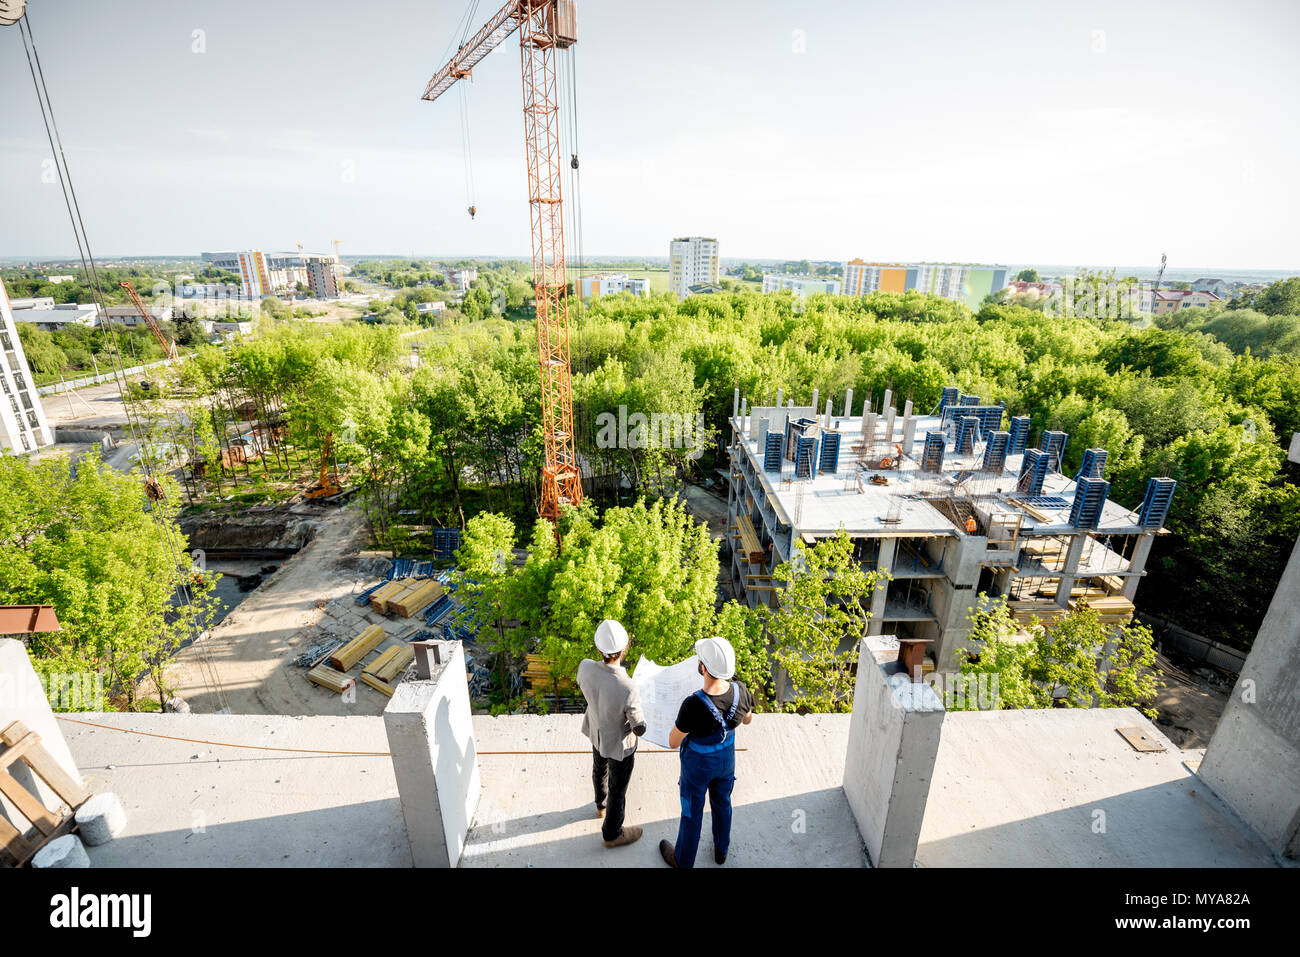 Construction site with workers - Stock Image